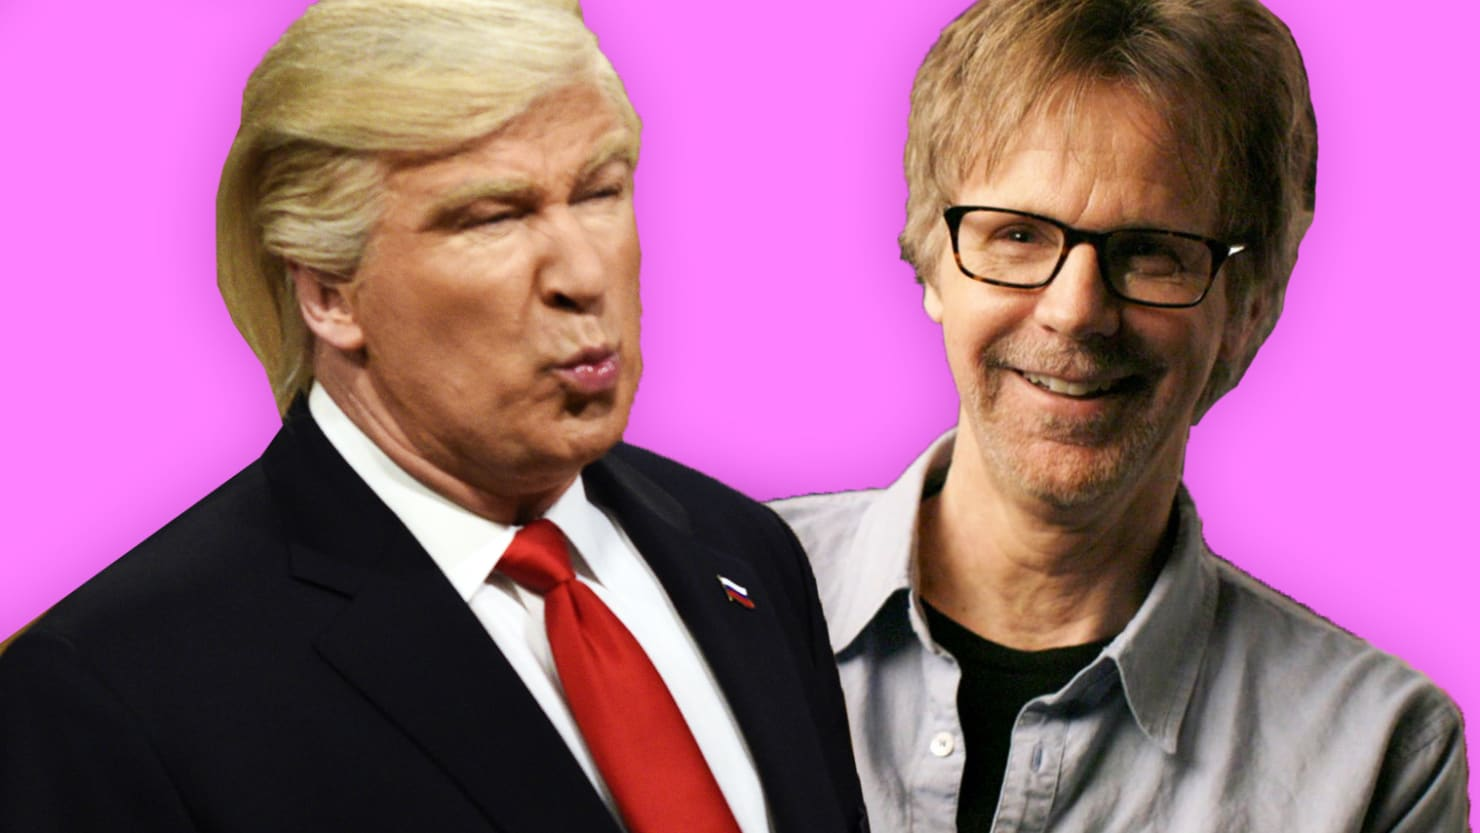 dana carvey worries about trump fatigue on snl